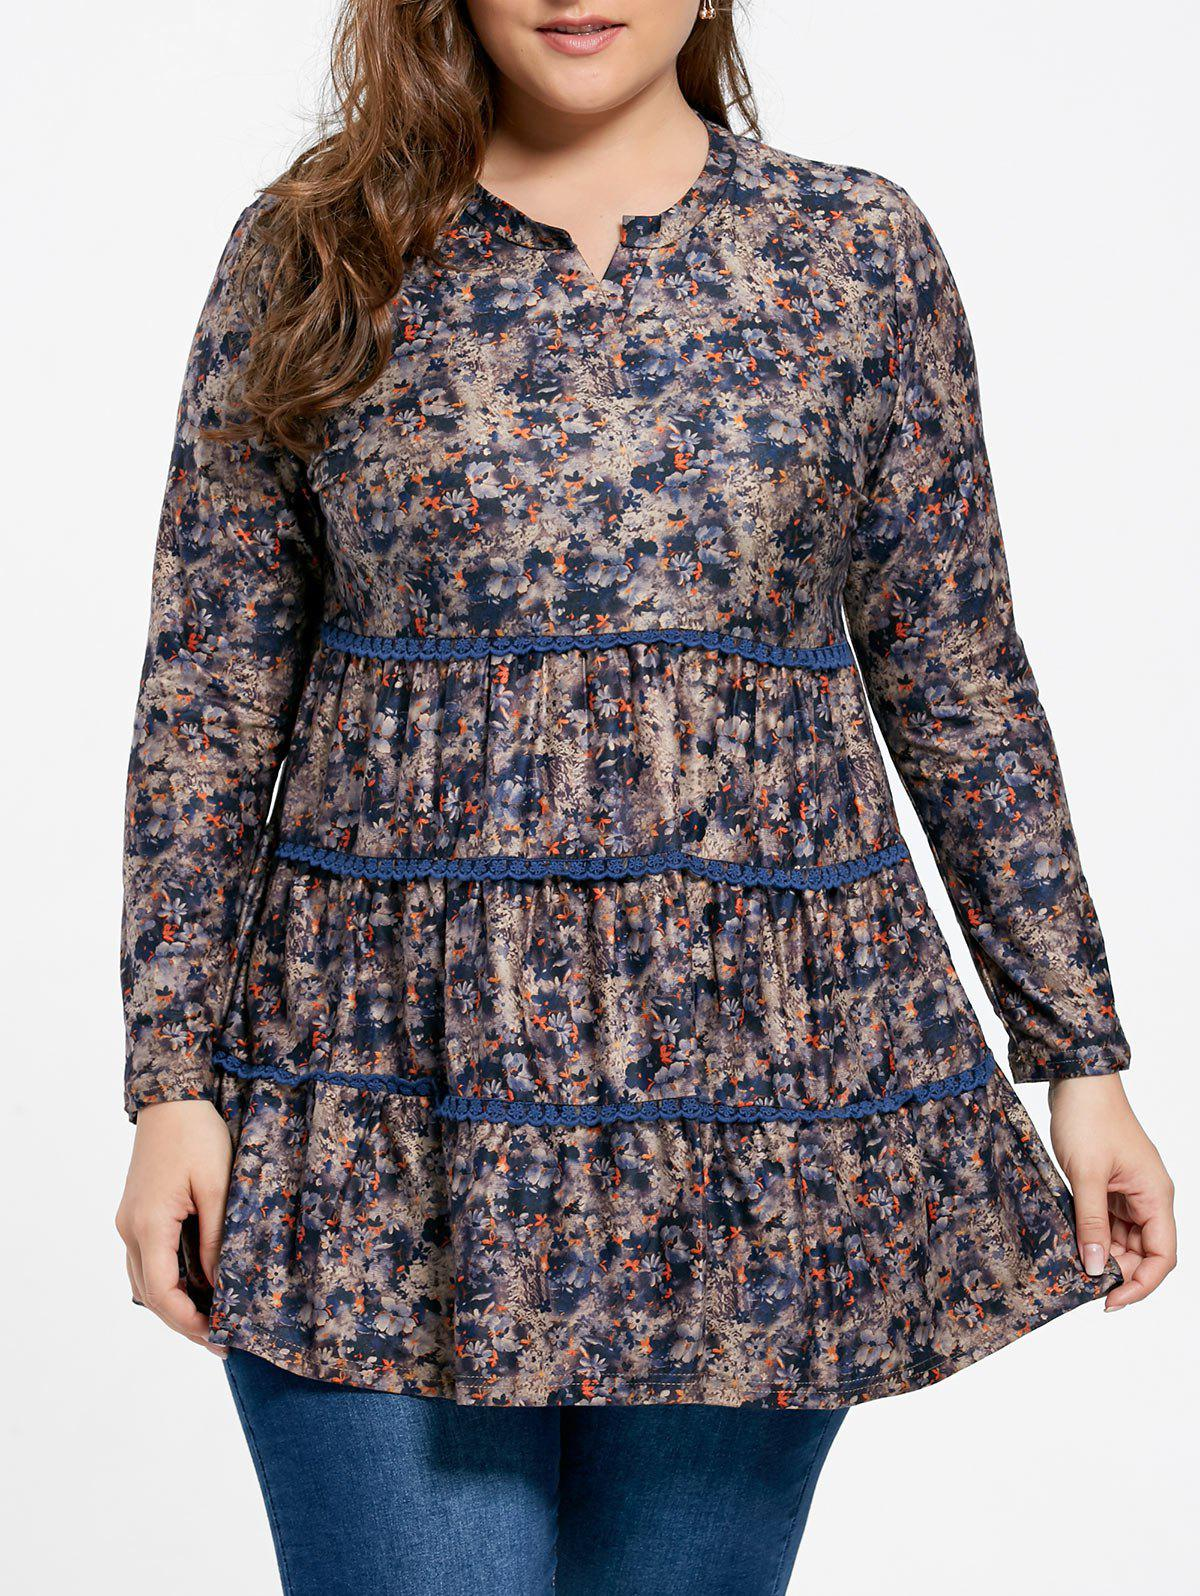 Plus Size Skirted Floral Print BlouseWOMEN<br><br>Size: 5XL; Color: MULTI; Material: Polyester; Shirt Length: Long; Sleeve Length: Full; Collar: V-Neck; Style: Fashion; Season: Fall; Pattern Type: Floral; Weight: 0.3500kg; Package Contents: 1 x Blouse;